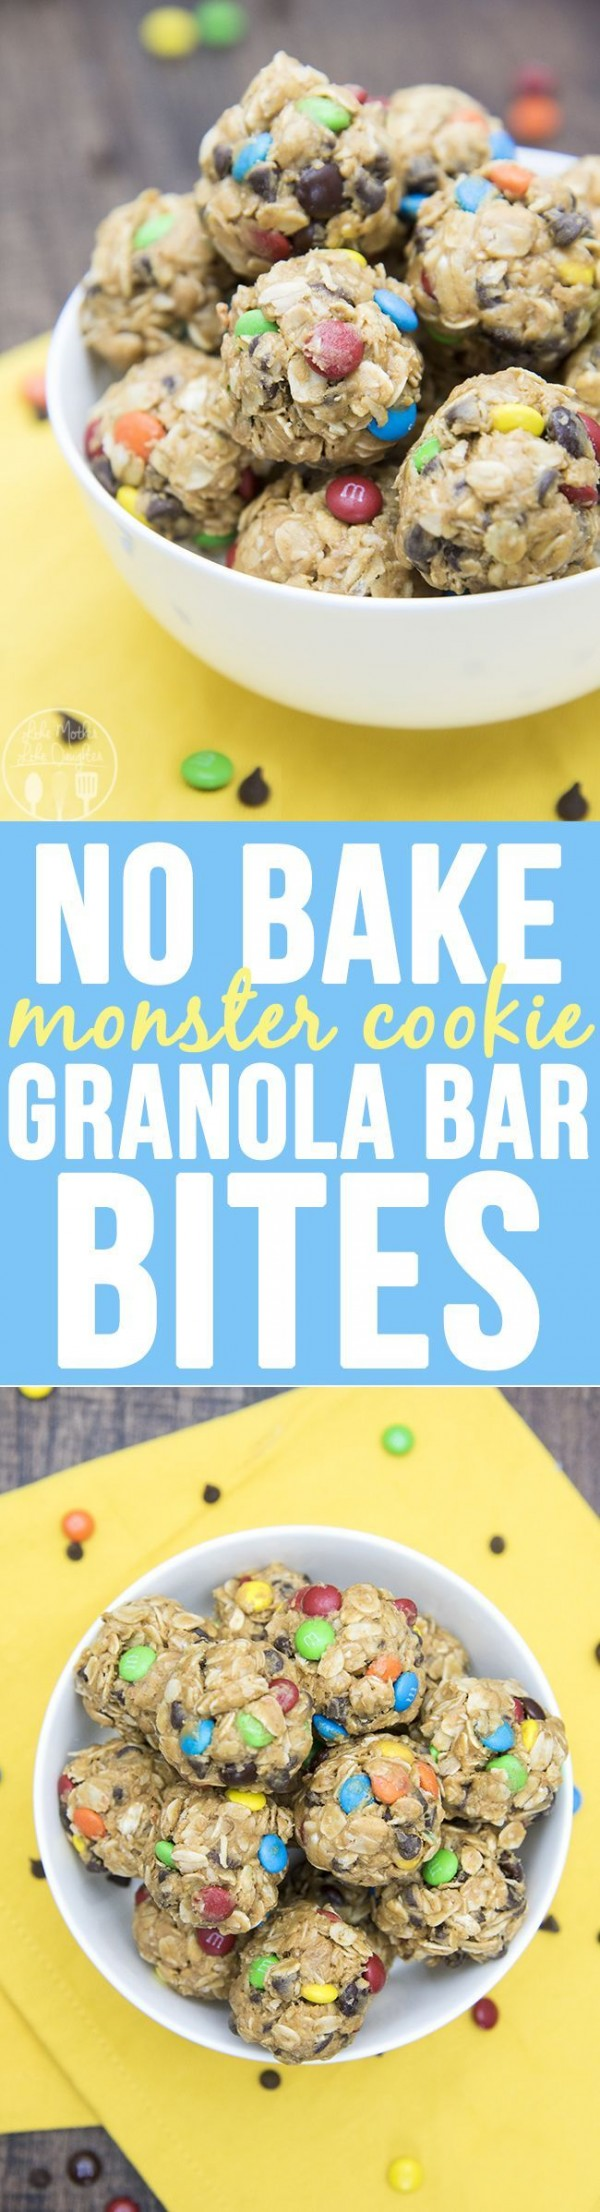 Get the recipe Monster Cookie Granola Bar Bites @recipes_to_go